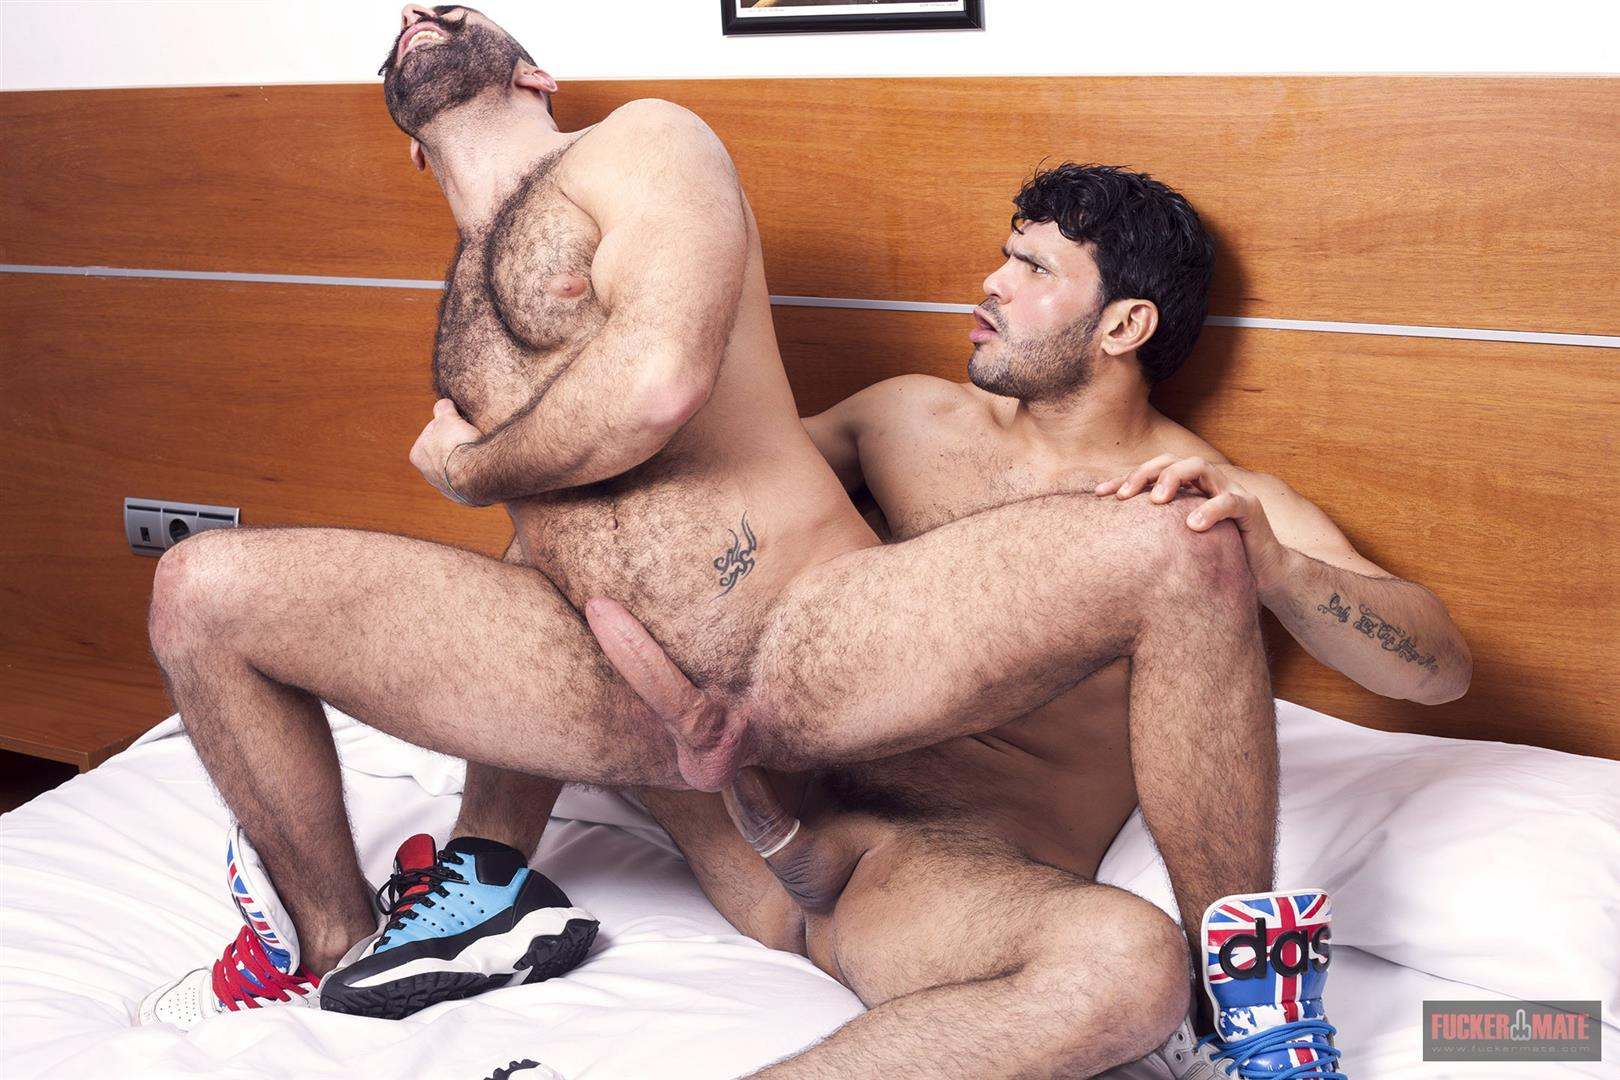 Fucking men big hairy